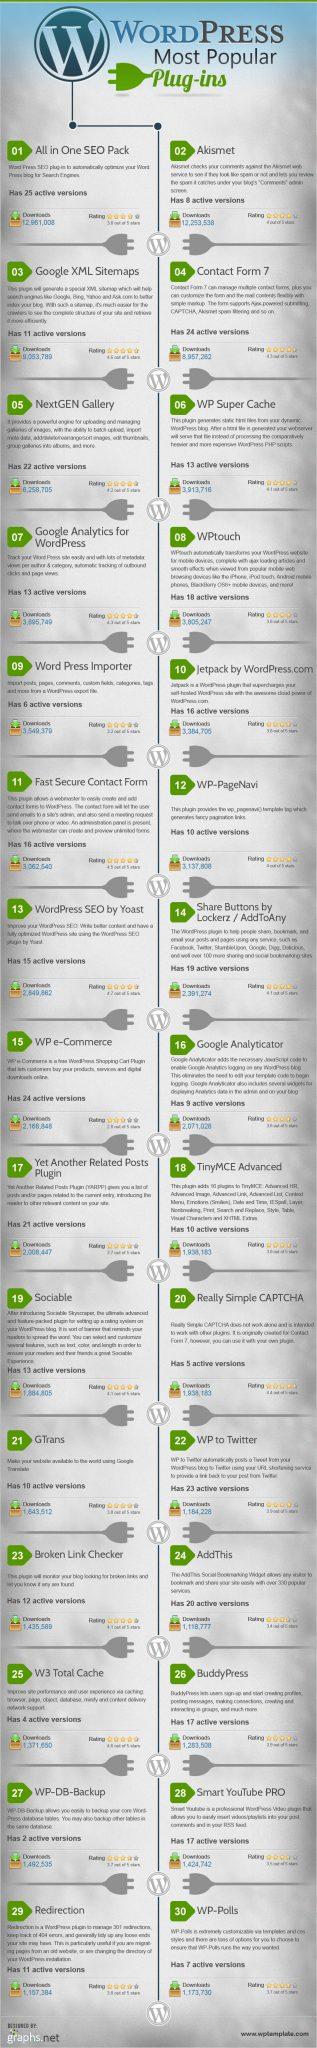 The Top 30 Most Popular WordPress Plugins (Infographic)